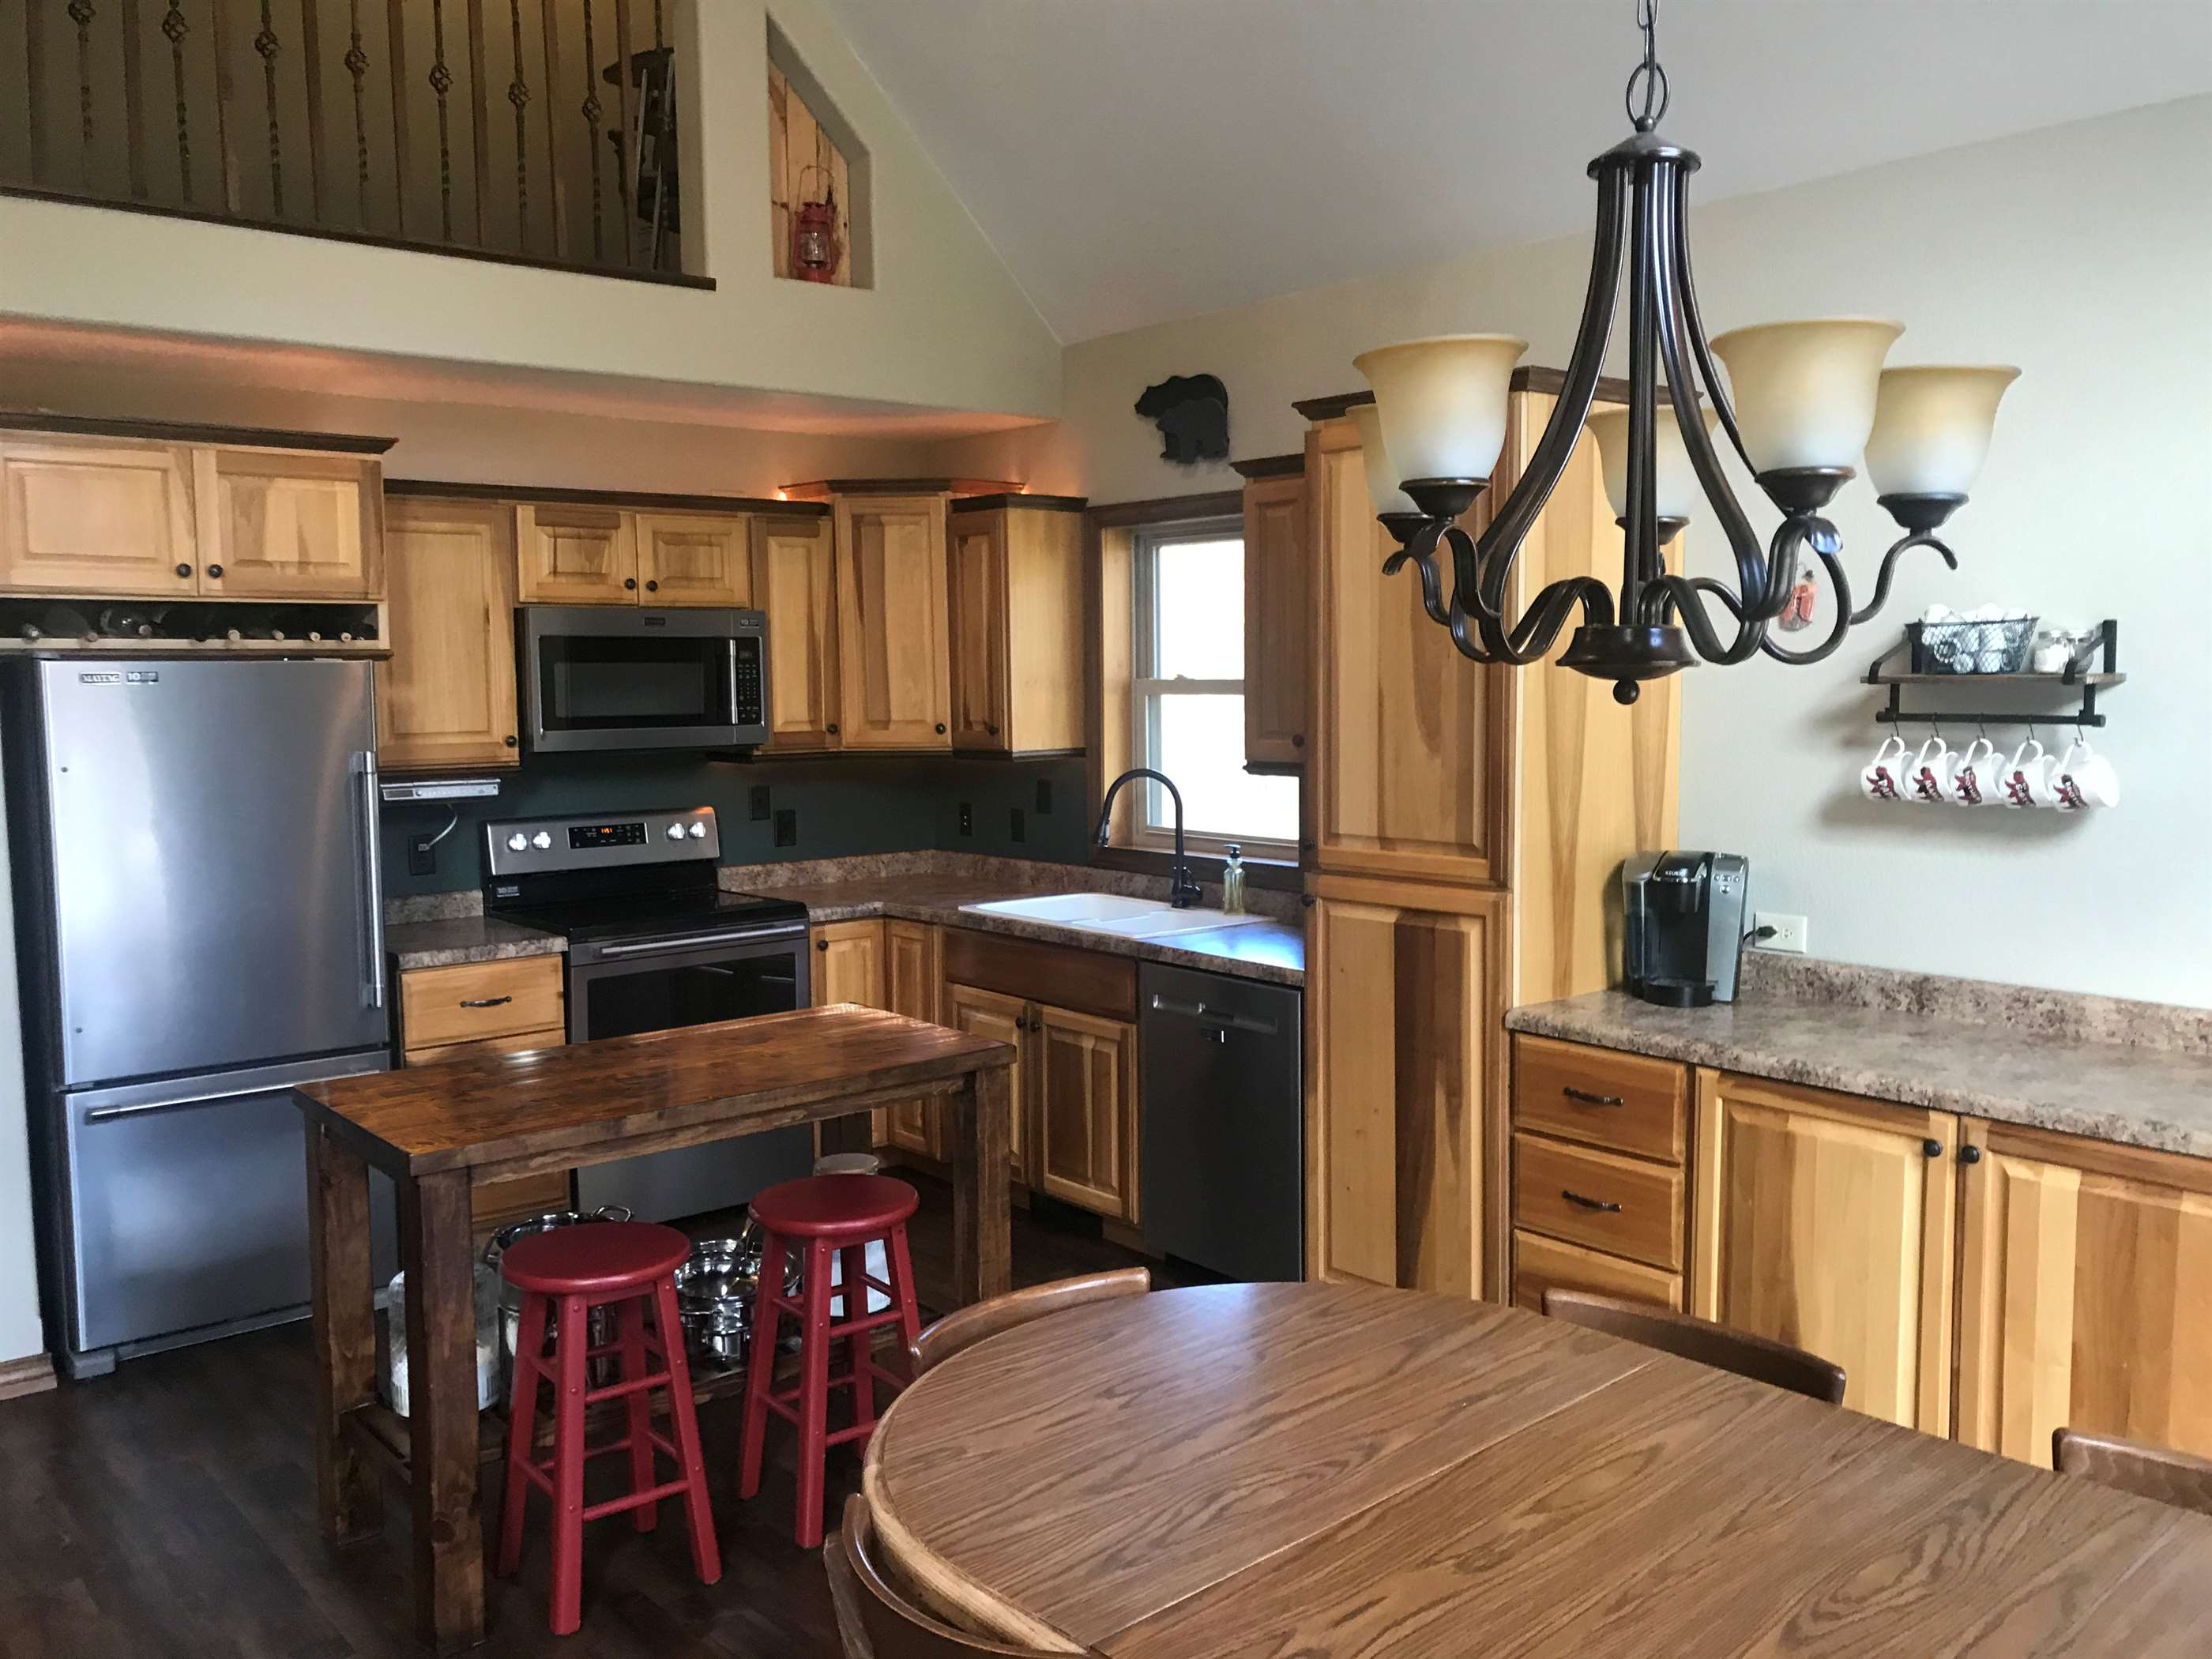 1526 Kingswood Trail, Nekoosa, WI 54457